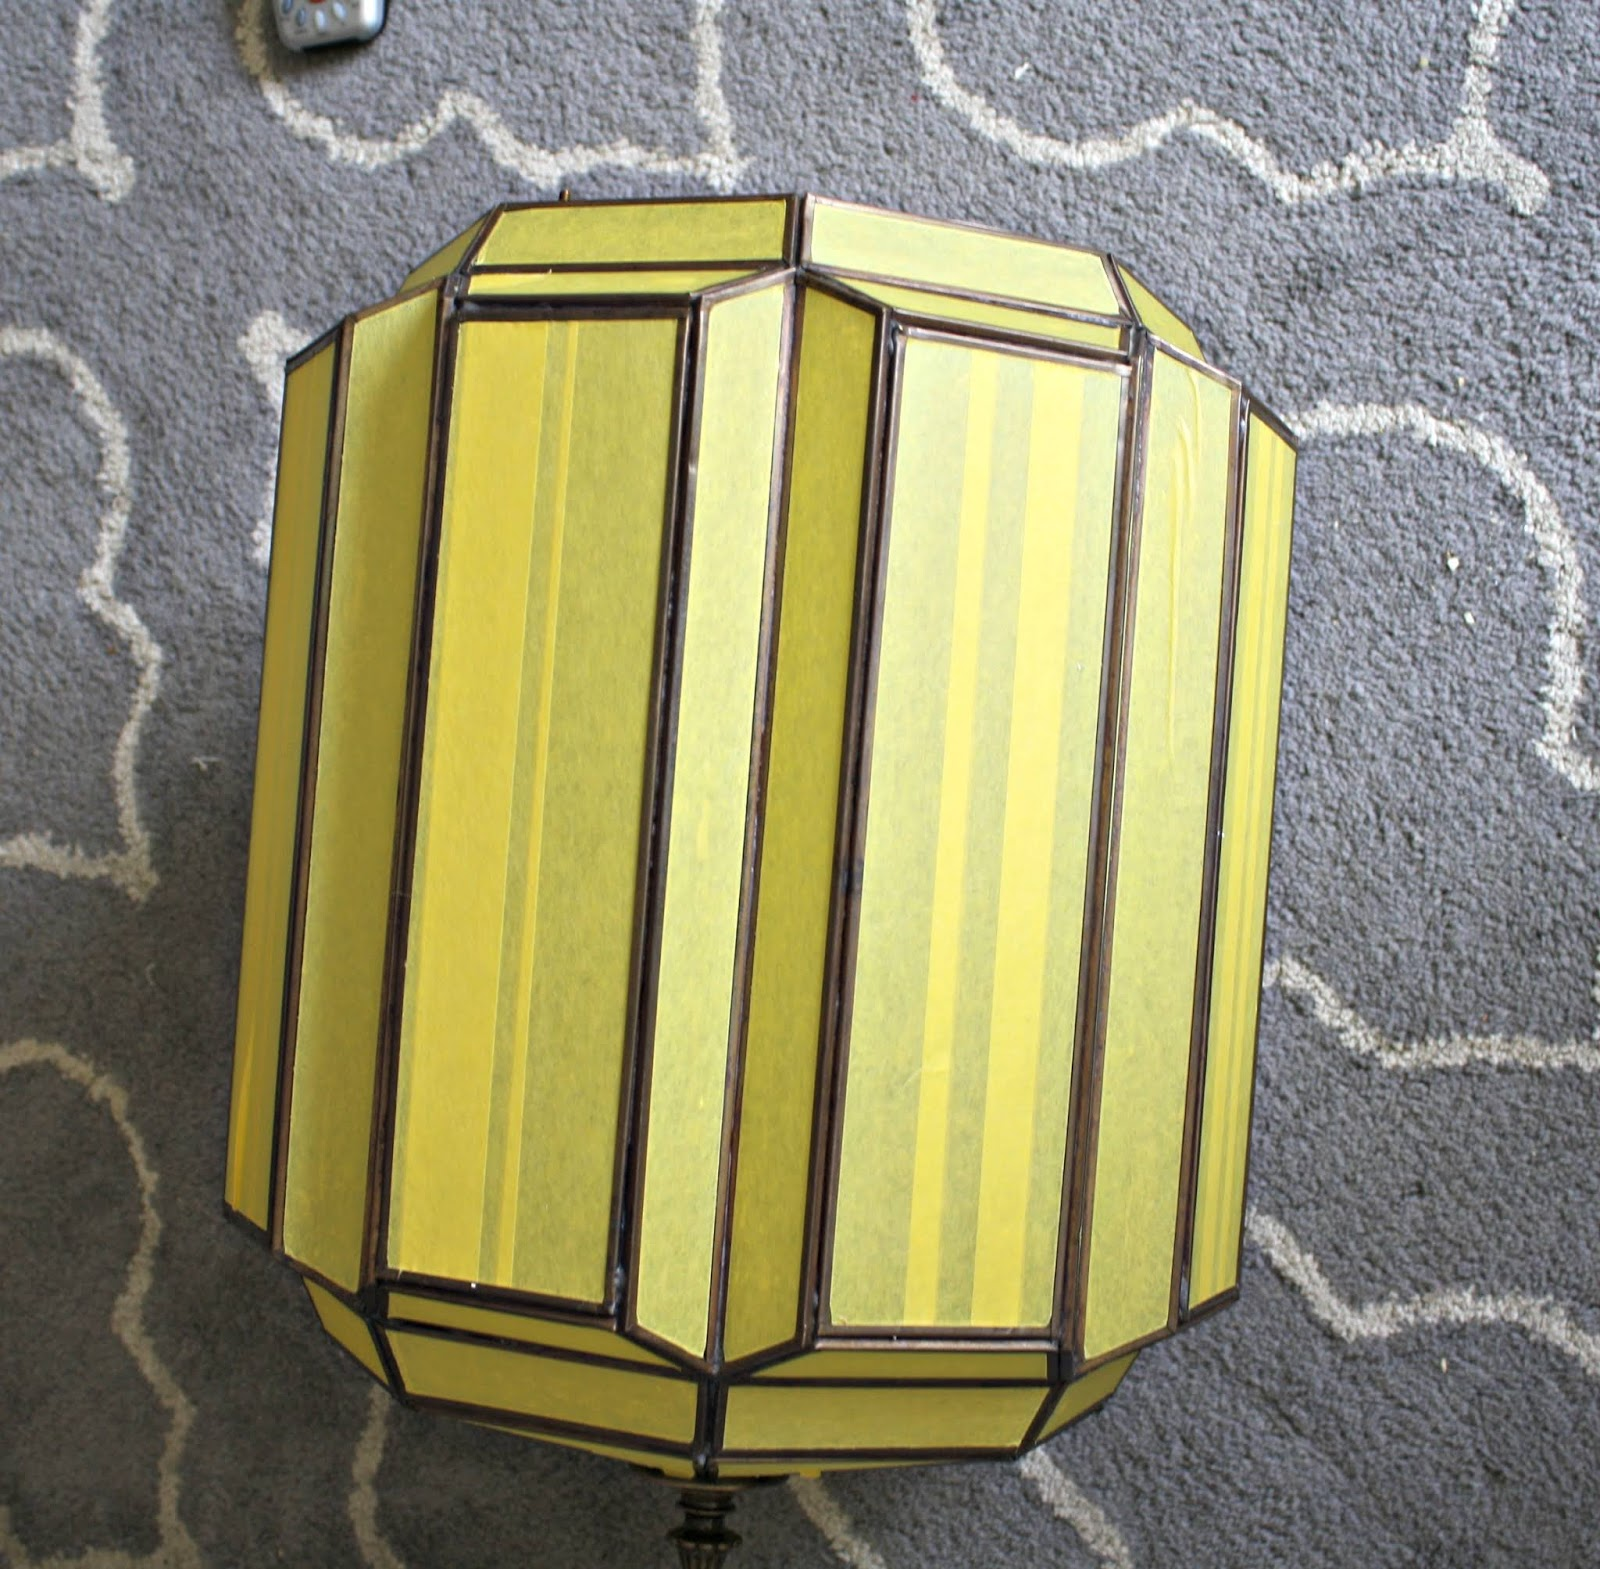 Updating 80's light fixture with spray paint